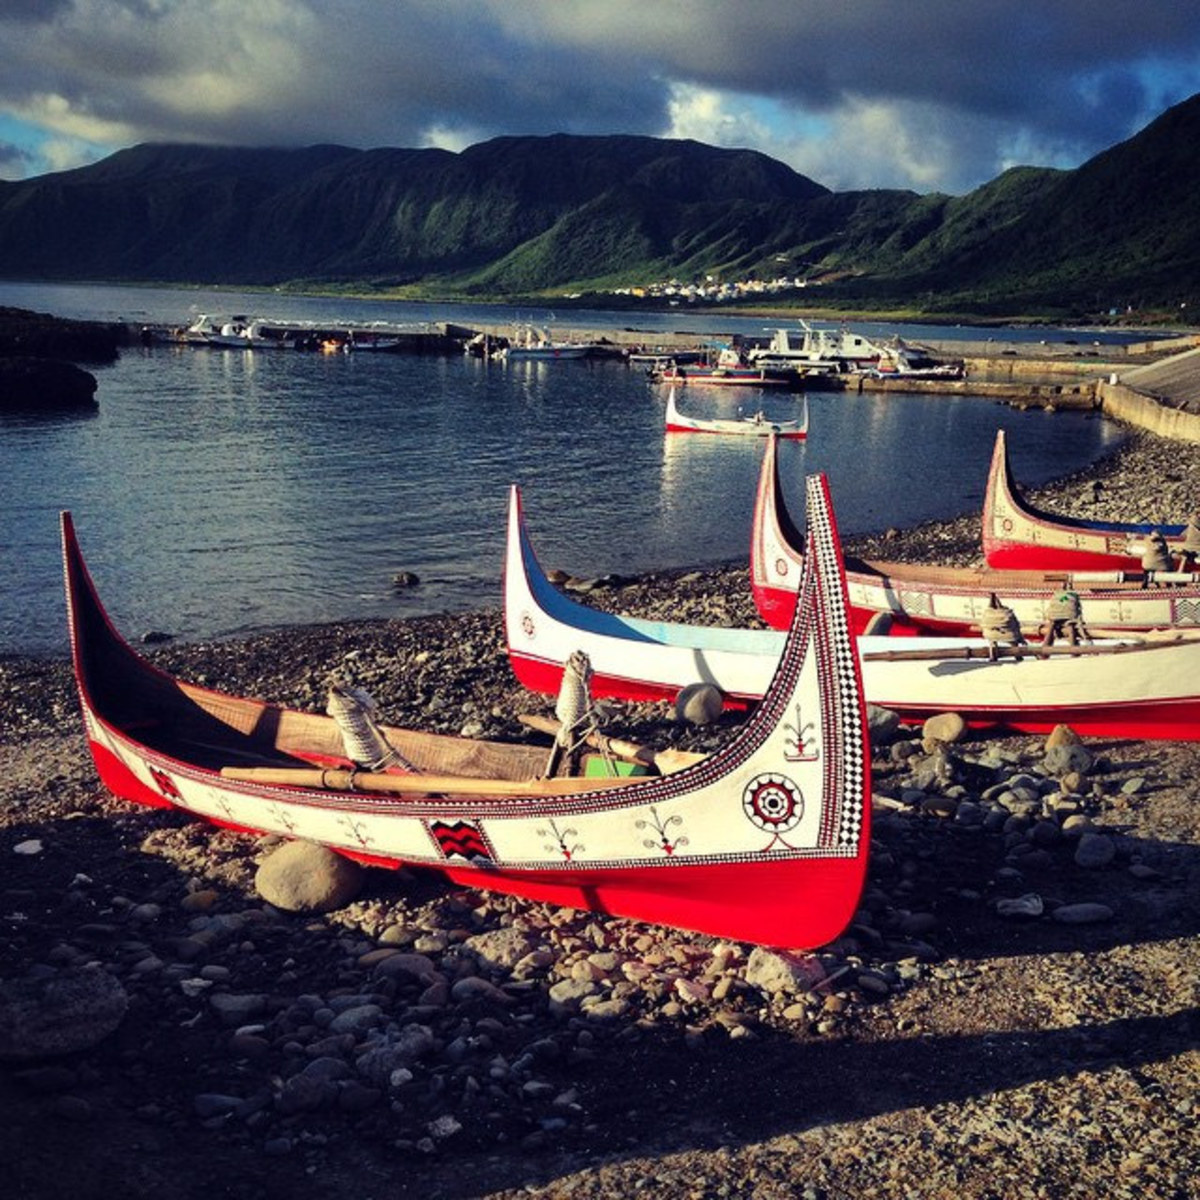 Traditional fishing boats for gathering flying fish.